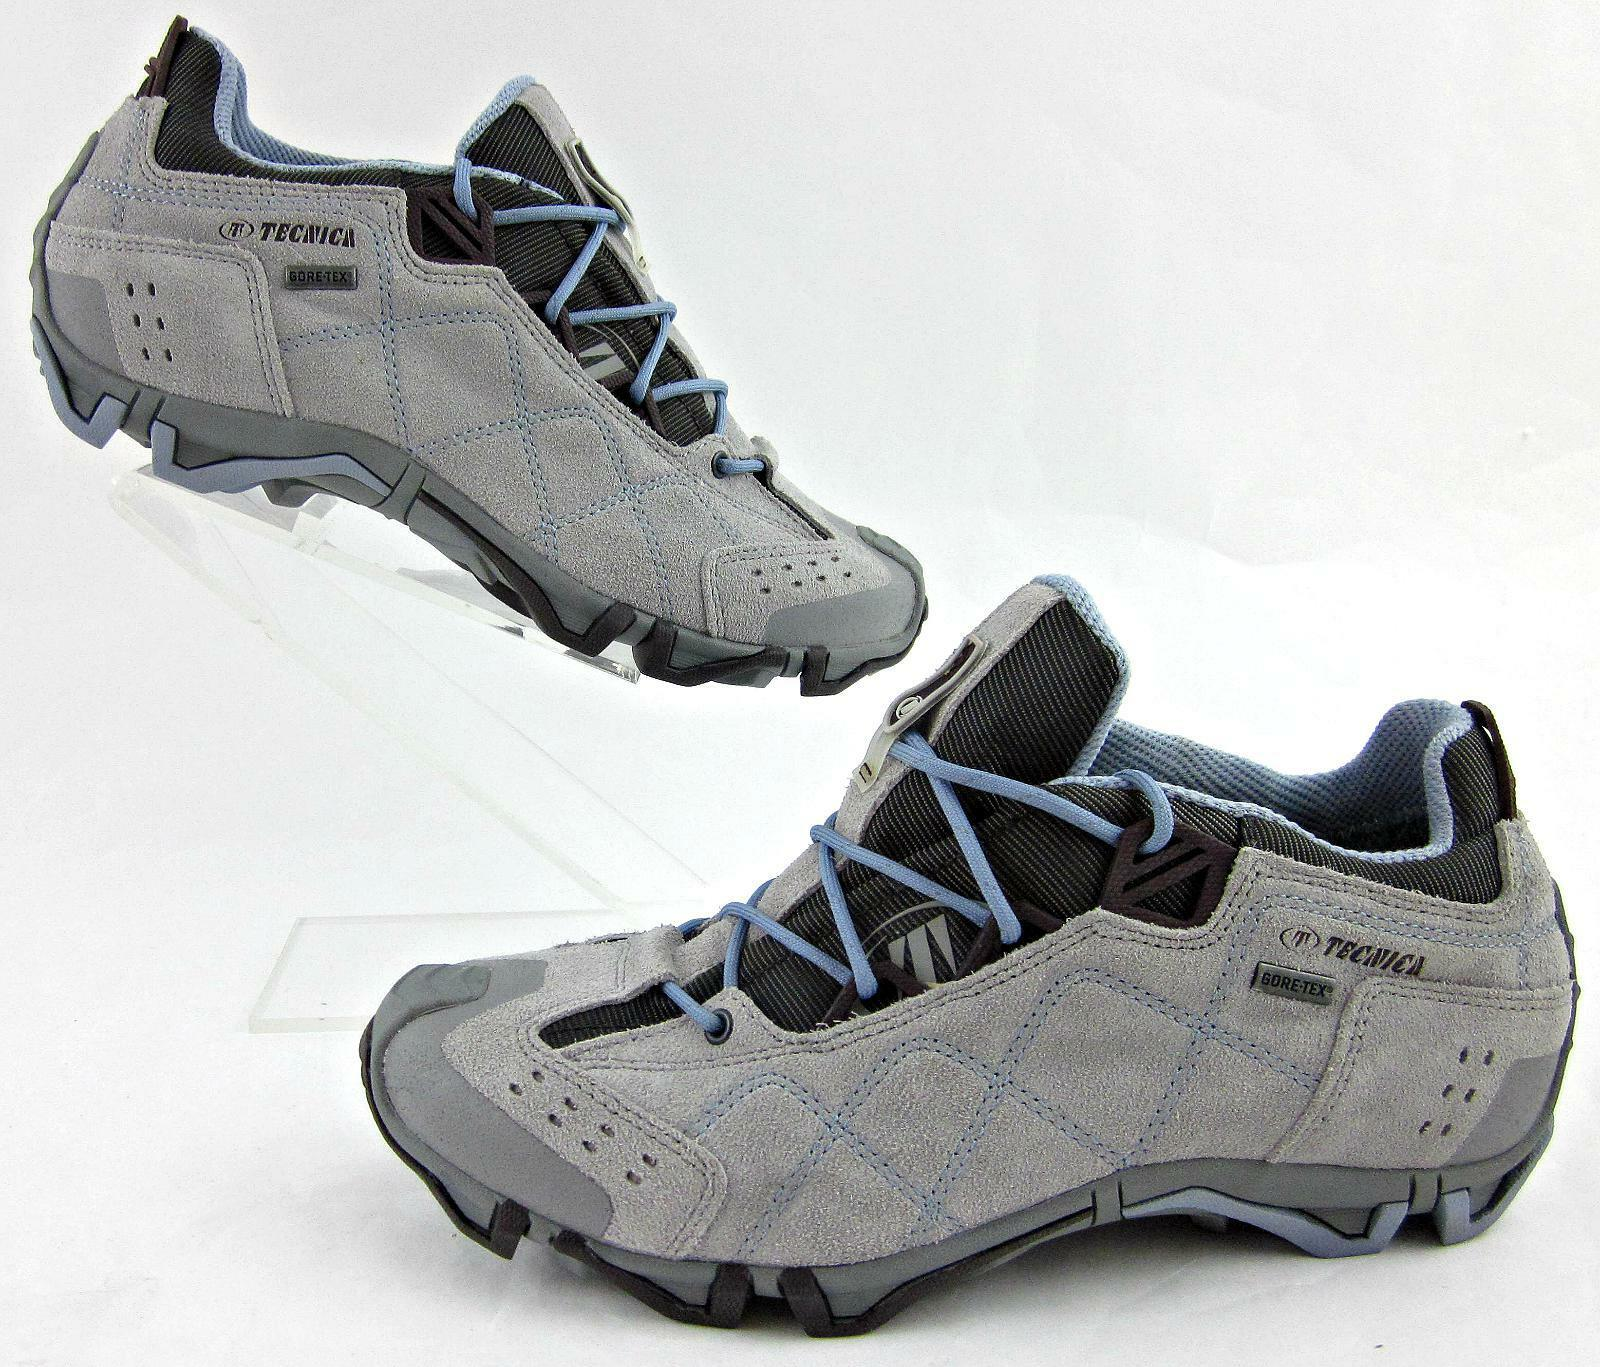 New With GTX Tag TECNICA Hornet Low GTX With GORE-TEX Hiking Chaussures Gris Sz 8 90c8a0